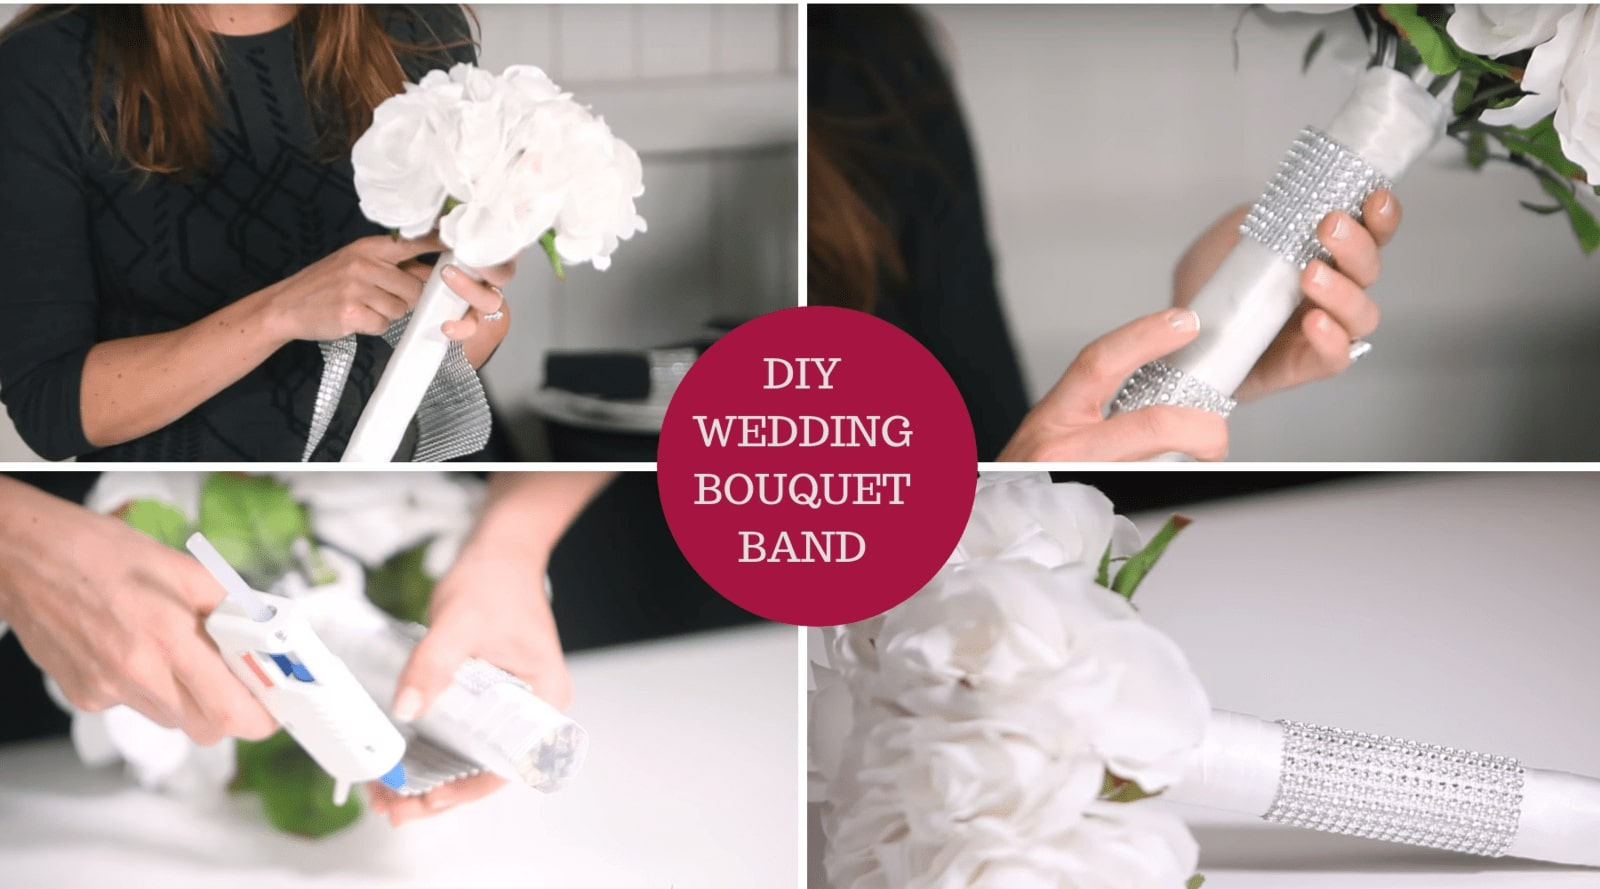 DIY Wedding Bouquet Band with Bling